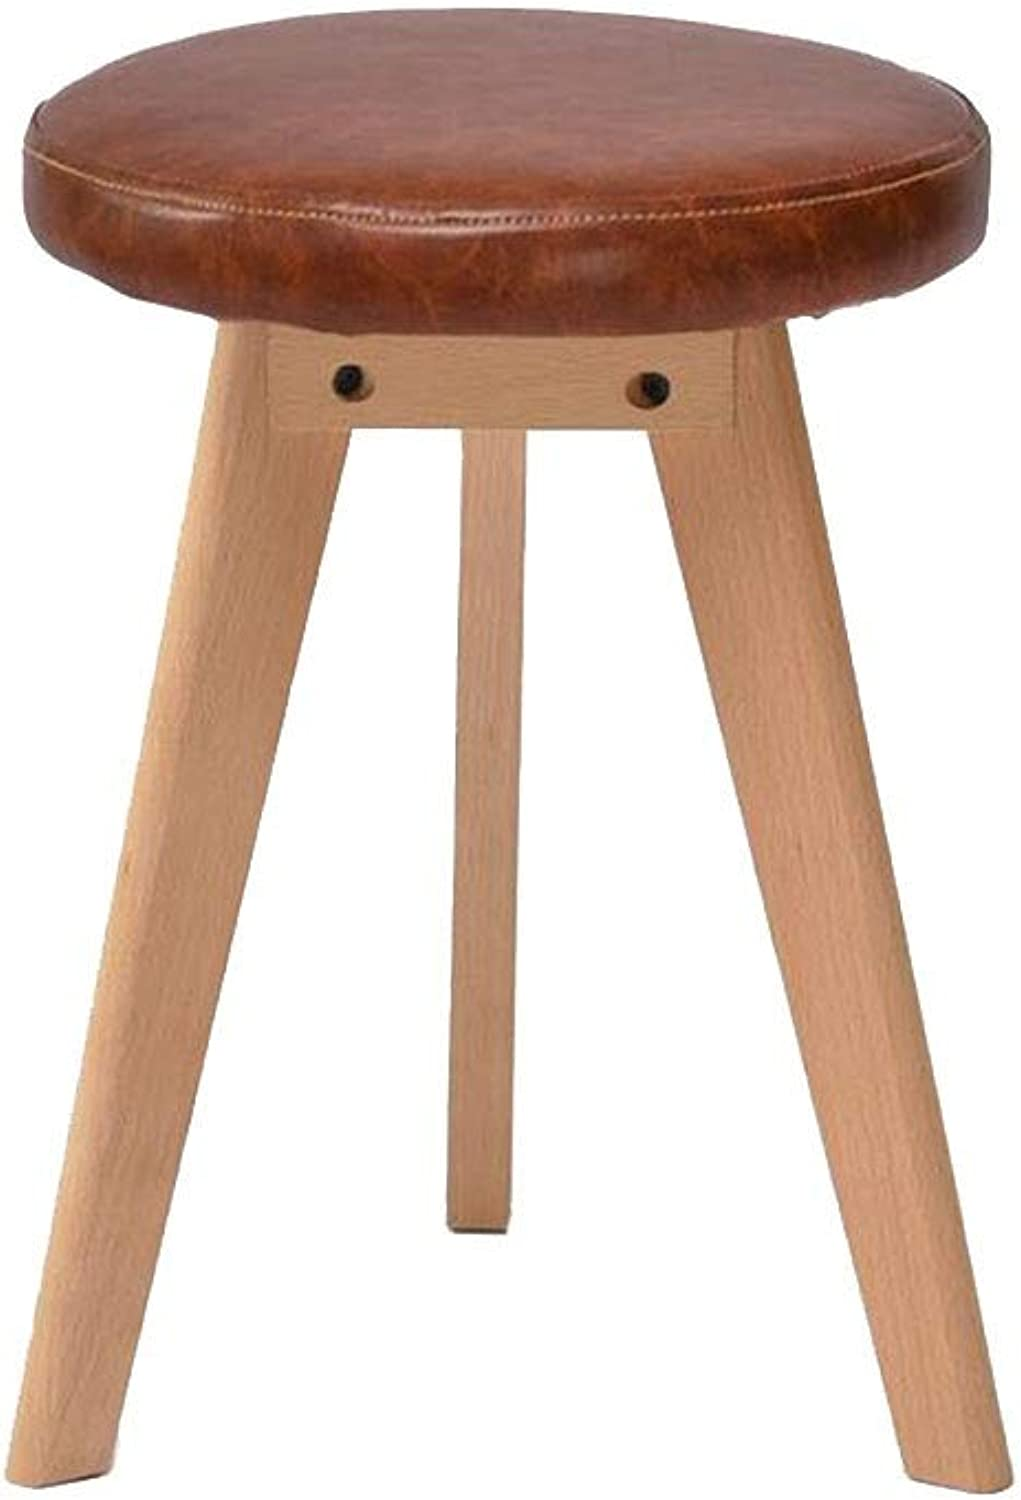 YCSD 45cm High Solid Wood Dining Stool Faux Leather Upholstered Makeup Stool Small Bench,for Study Living Room Bedroom (color   05)